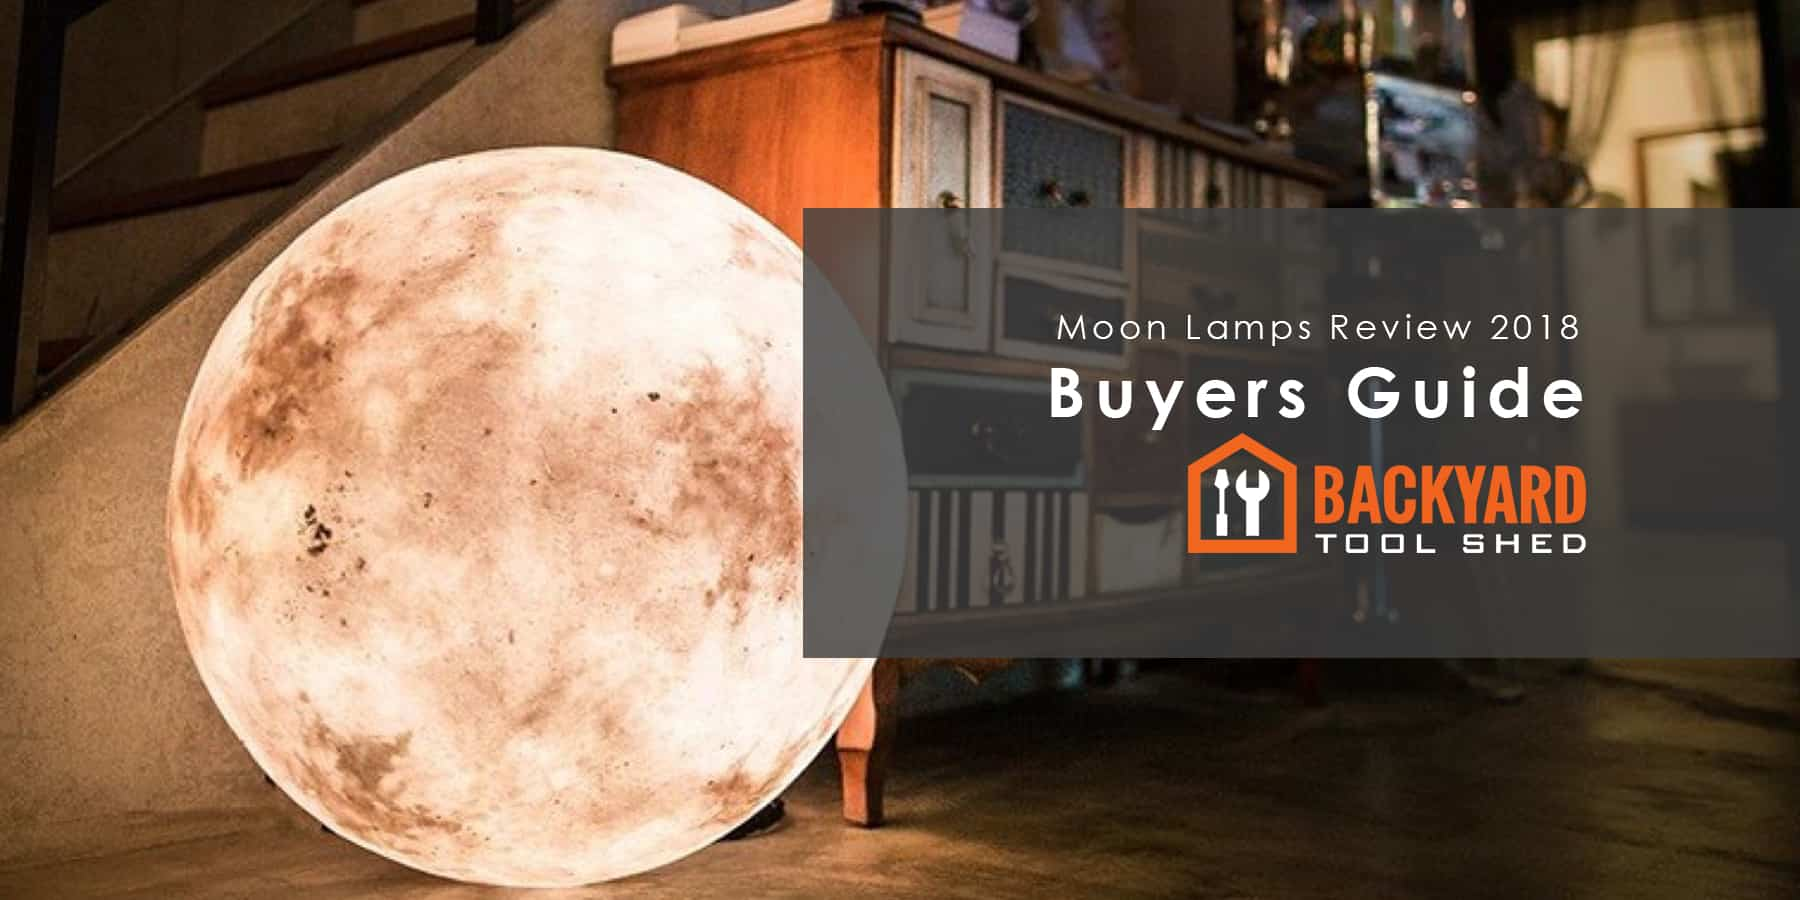 Moon Lamp Review 2018 – Full buyers guide on top Moon Lamps